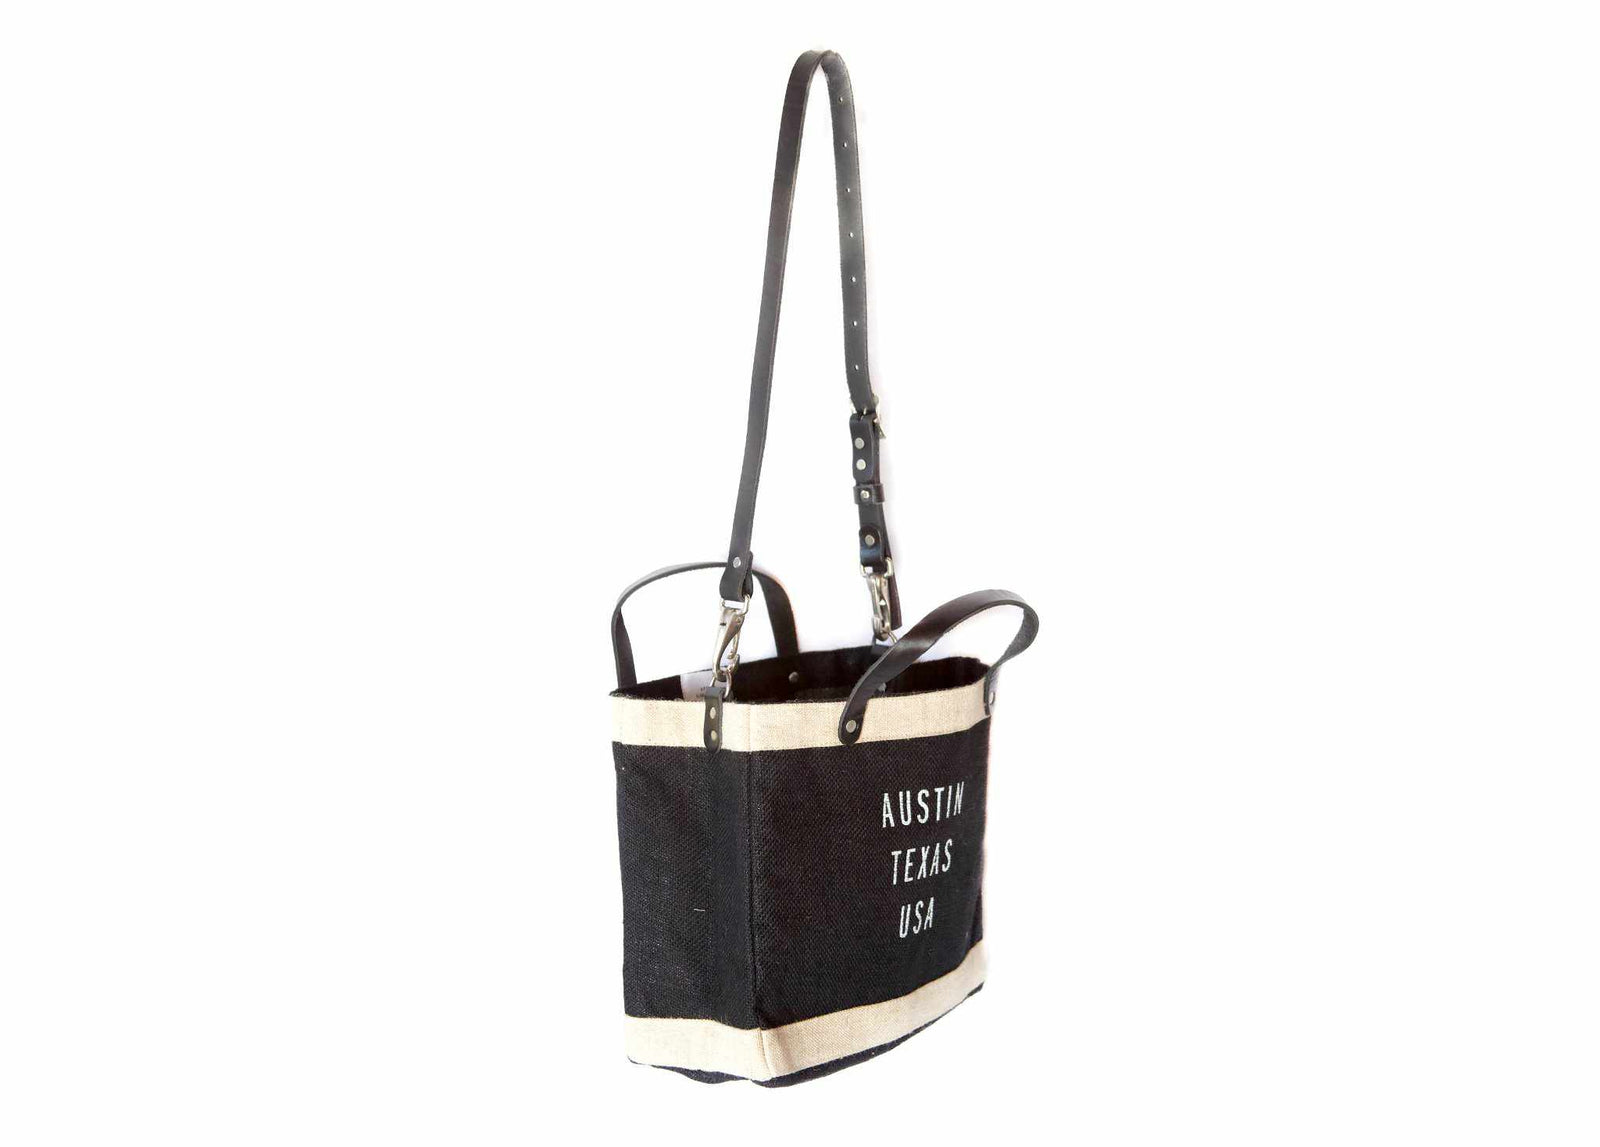 Customize Your Petite Black Market Bag with Detachable Handle for Baby2Baby®